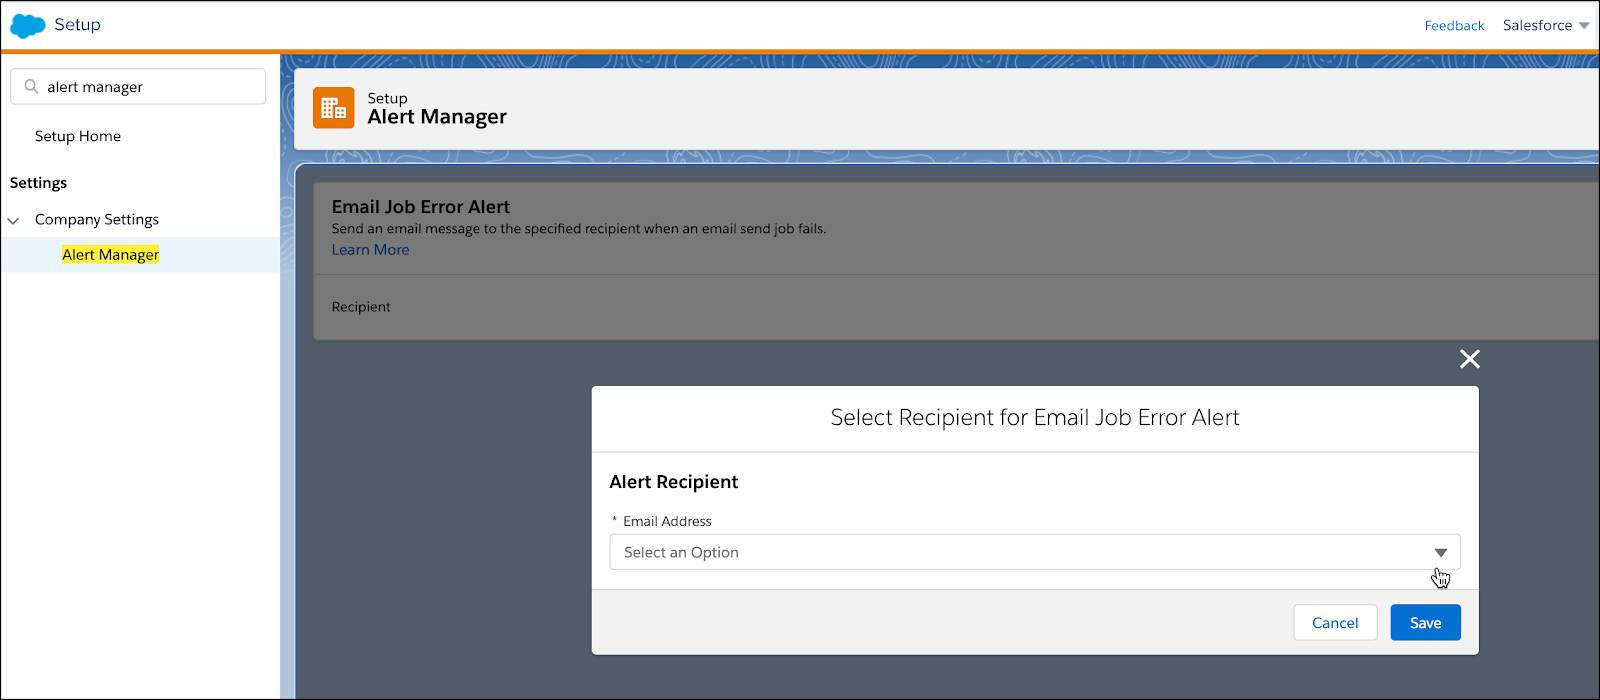 Select Recipient for Email Job Error Alert dropdown on the Alert Manager Setup page.